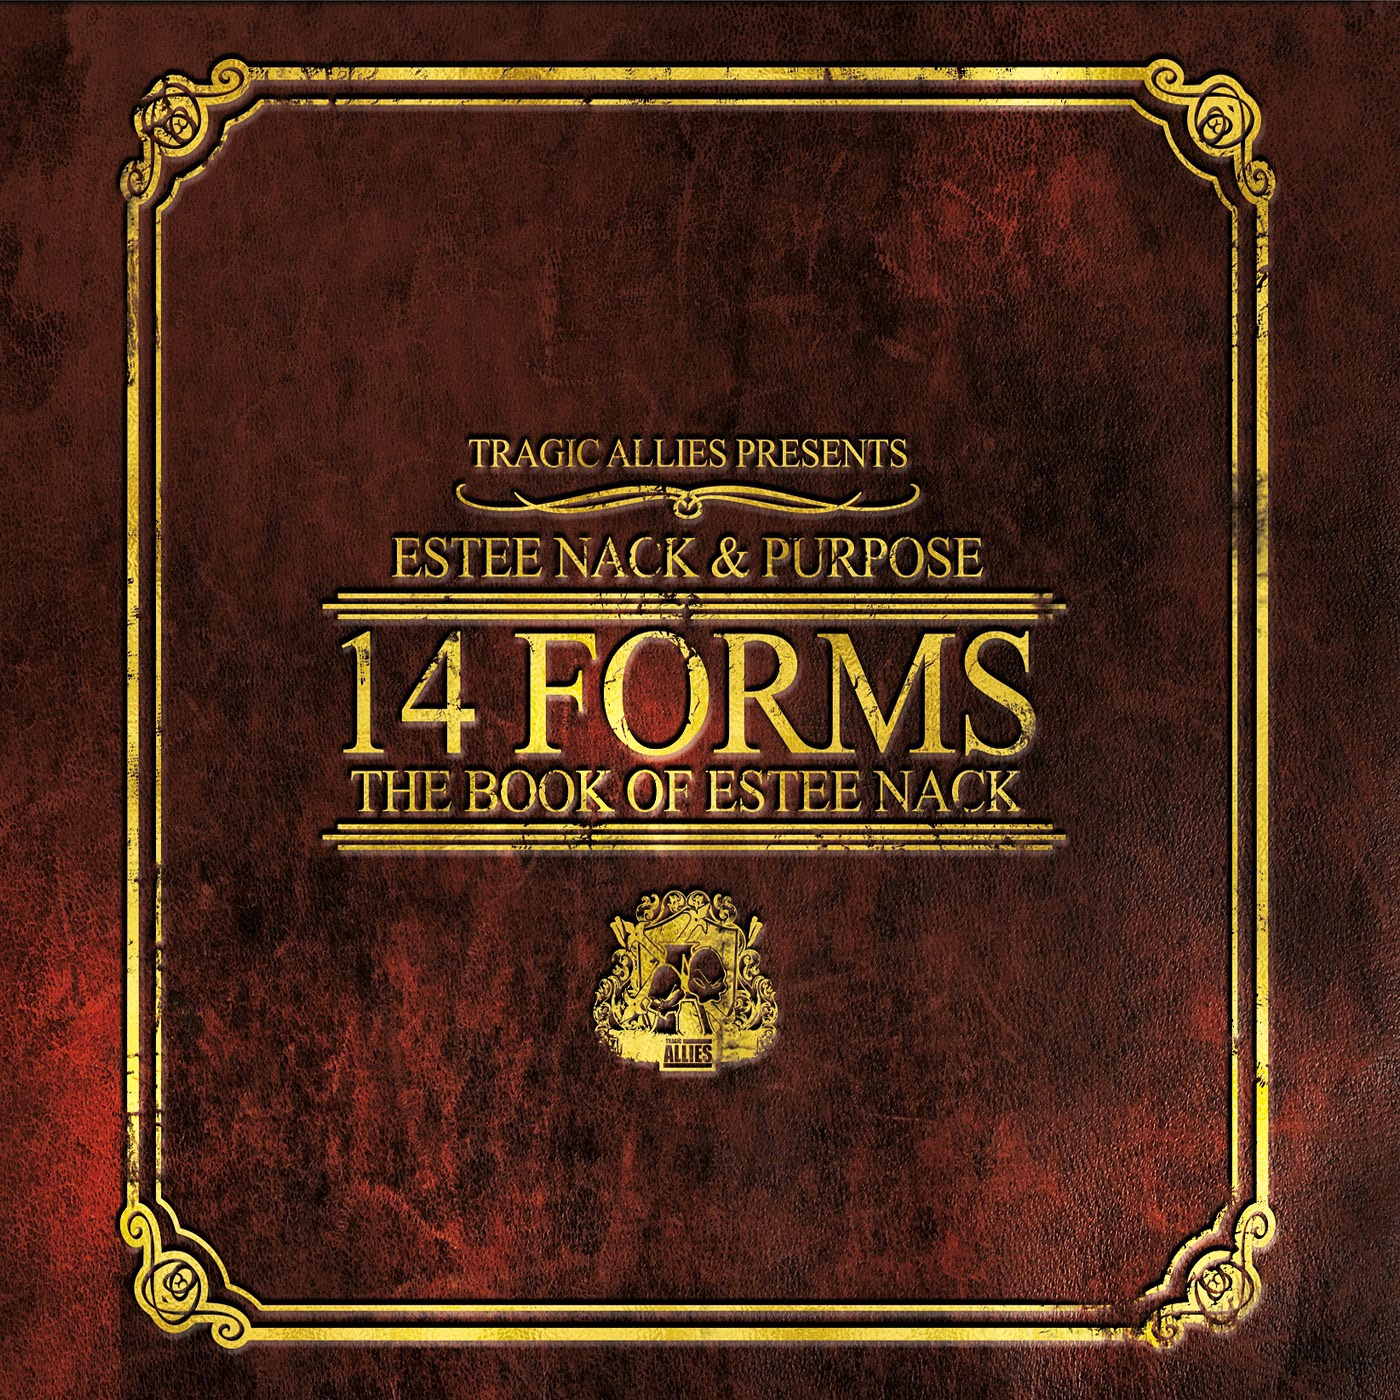 ESTEE NACK & PURPOSE - 14 FORMS: THE BOOK OF ESTEE NACK LP Inter-Review